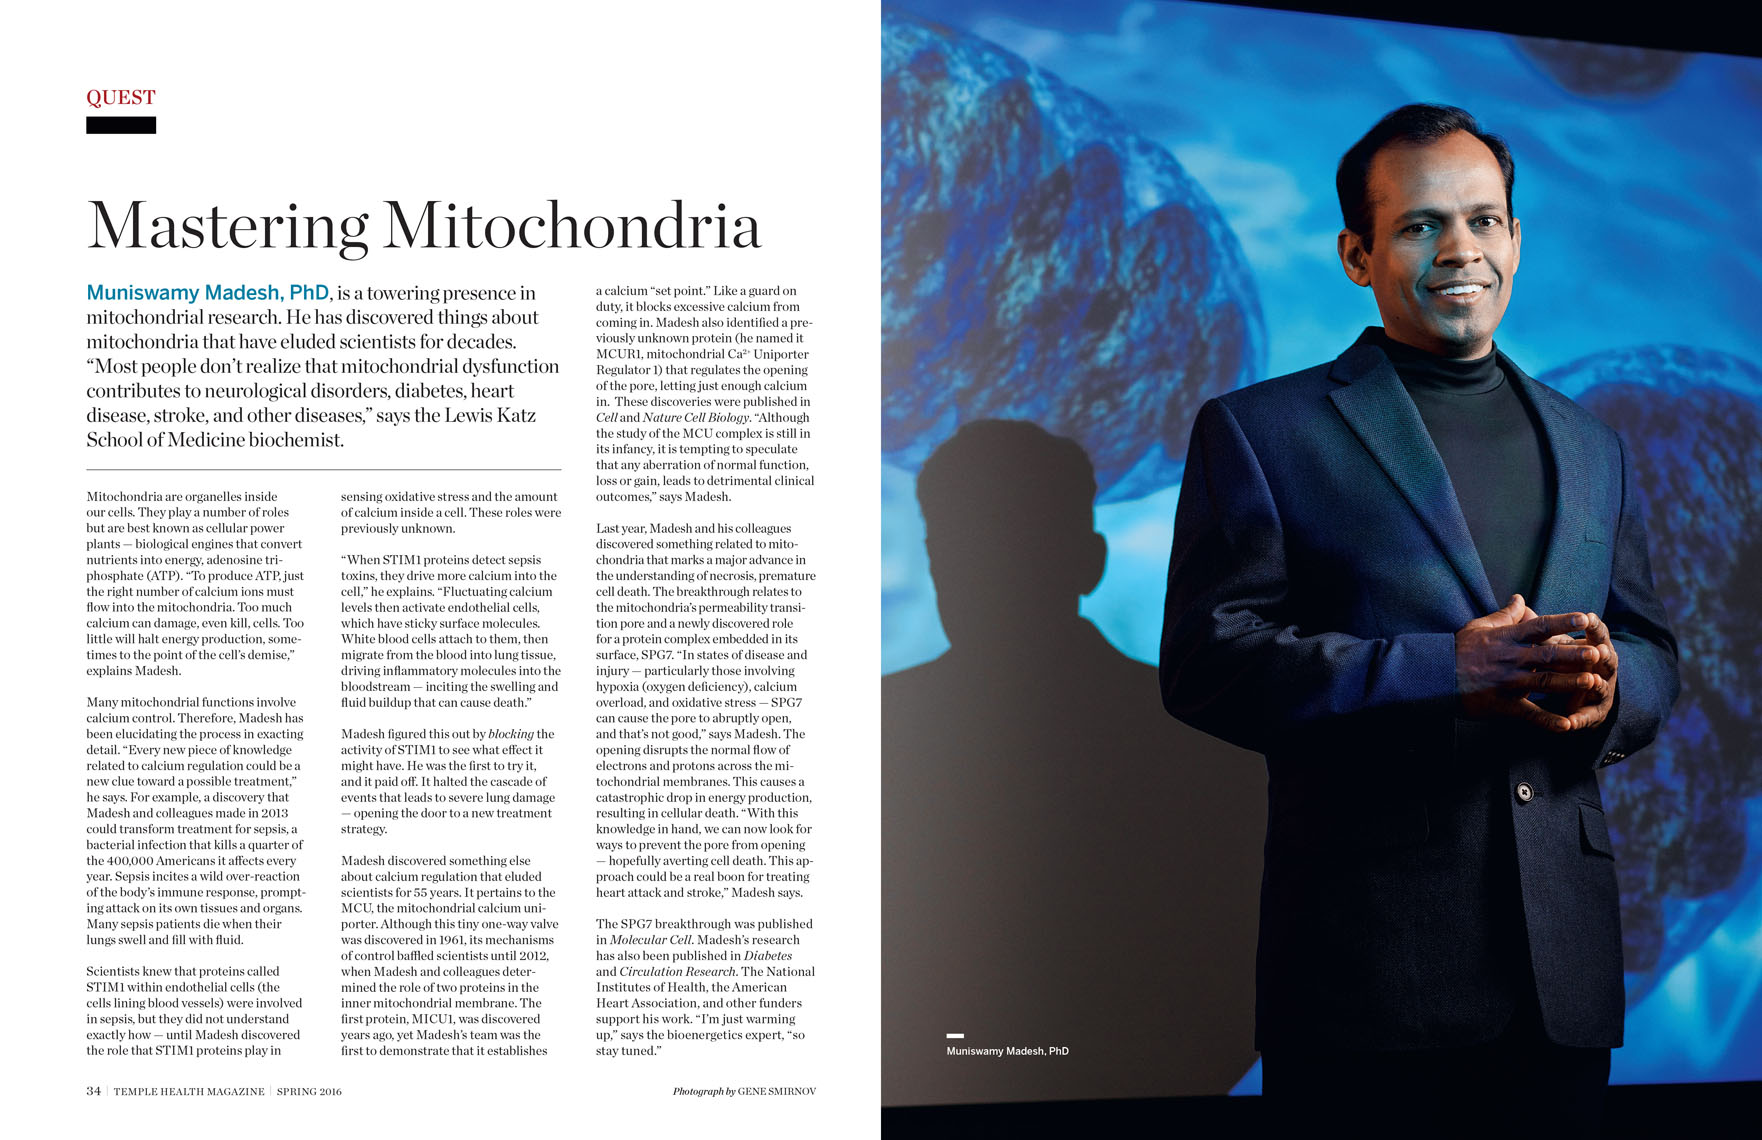 Muniswany Madesh, PhD, environmental portrait for Temple Health Magazine